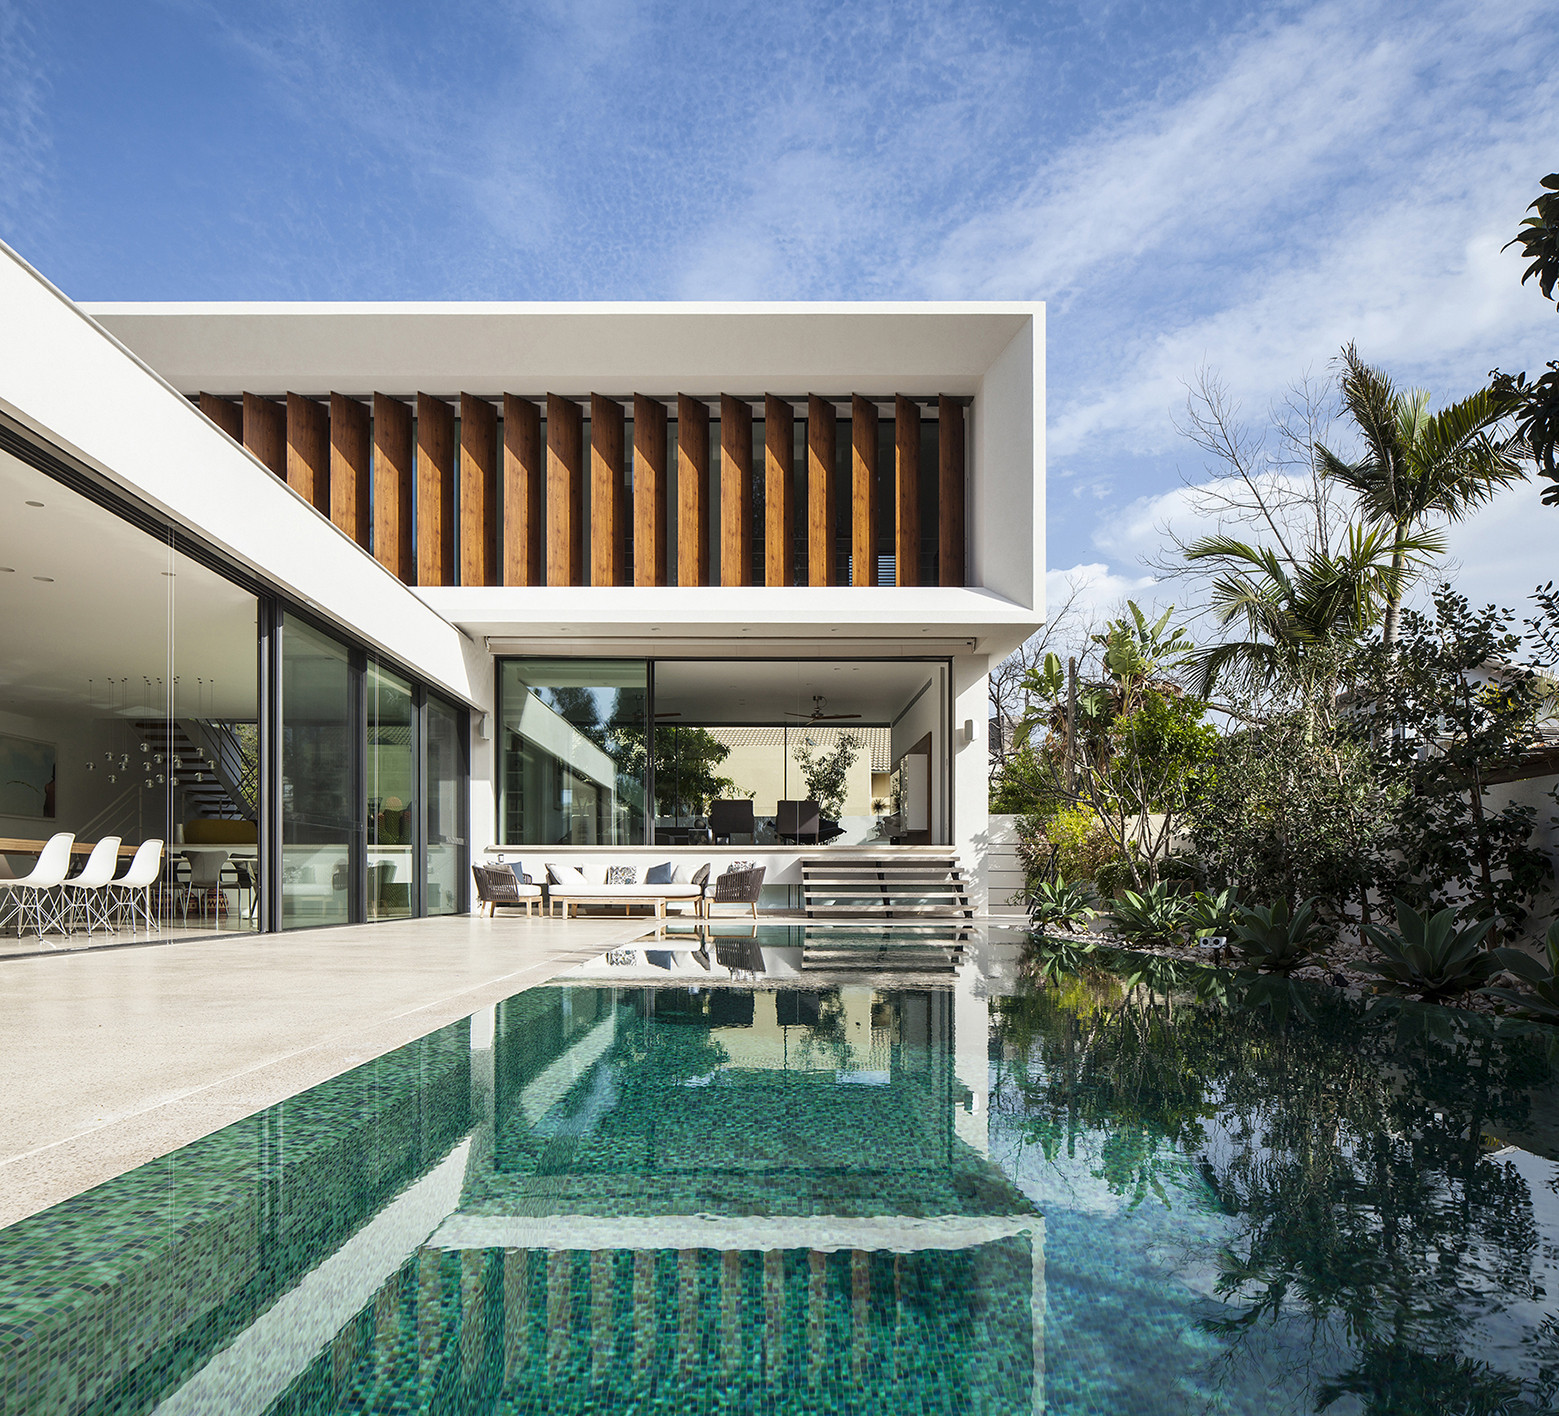 Mediterranean villa paz gersh architects archdaily for Villa de luxe contemporaine